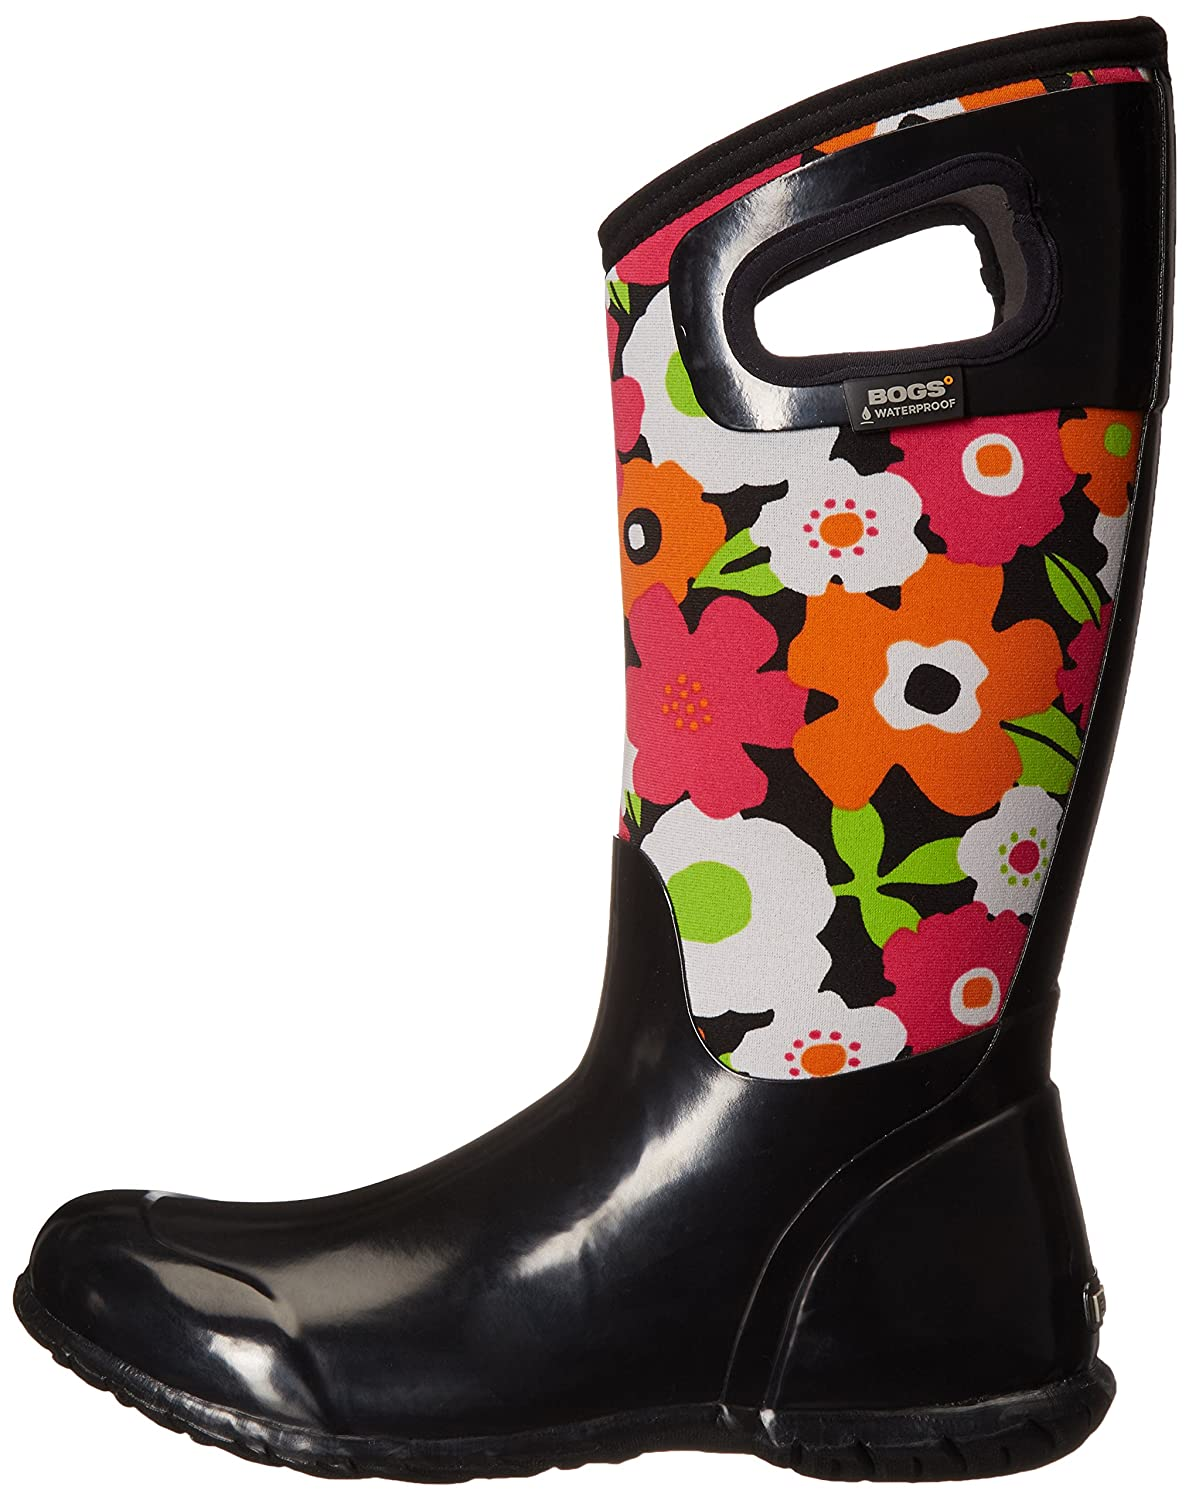 Bogs Women's North Hampton Spring Flowers Waterproof Insulated Boot B00TDJP8O2 6 B(M) US|Black/Multi